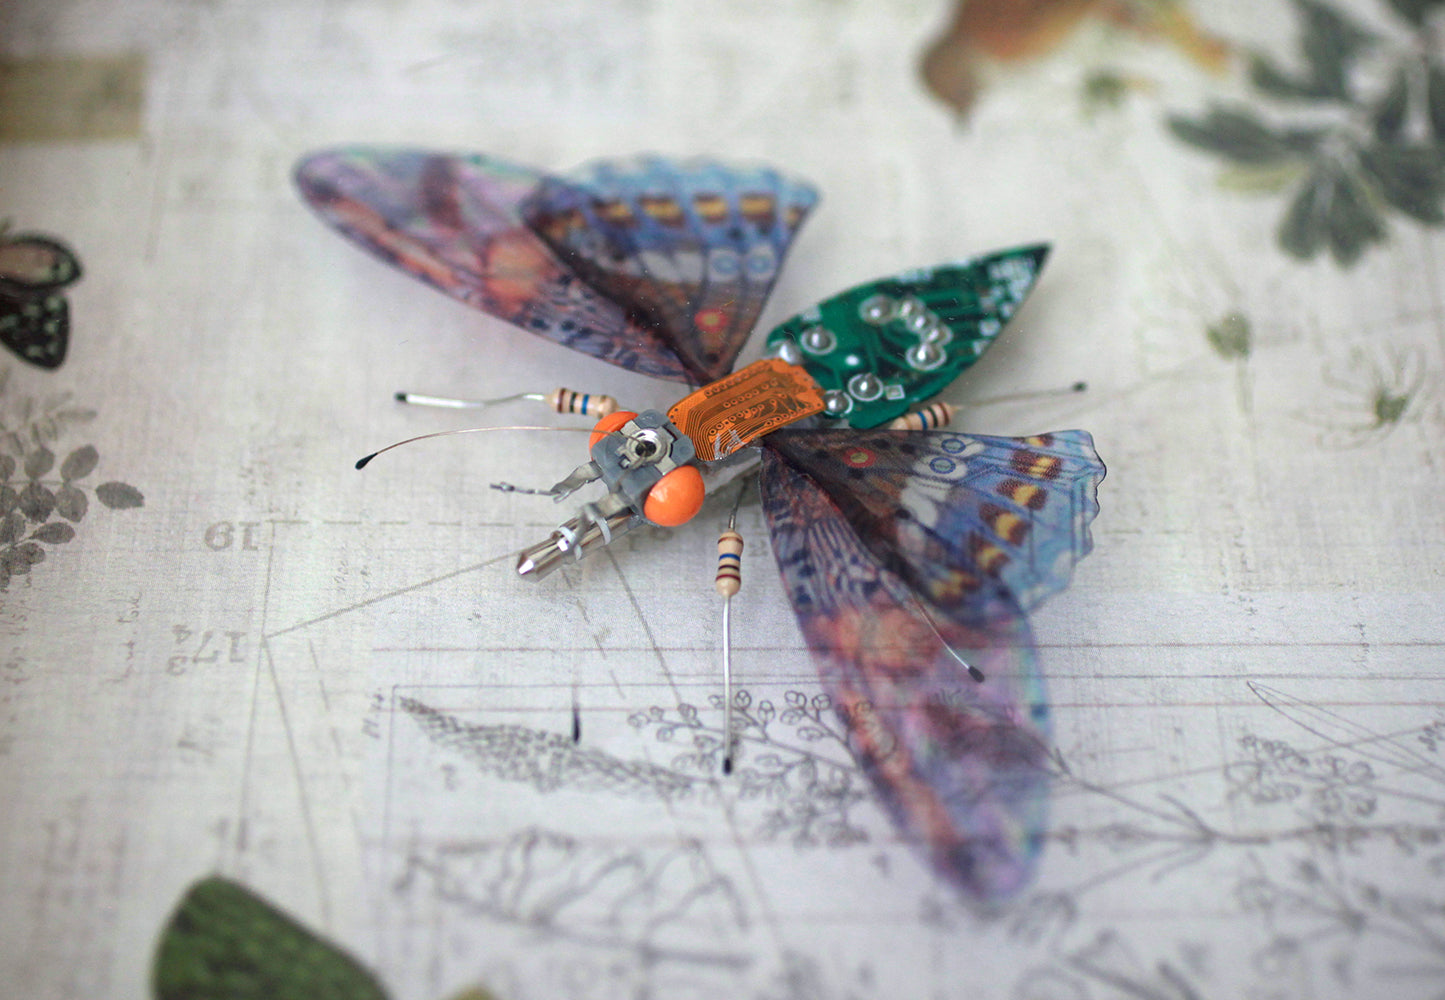 Circuit Board Wood Nymph | Seeds for Kindness | Upcycled, Repurposed, Reimagined